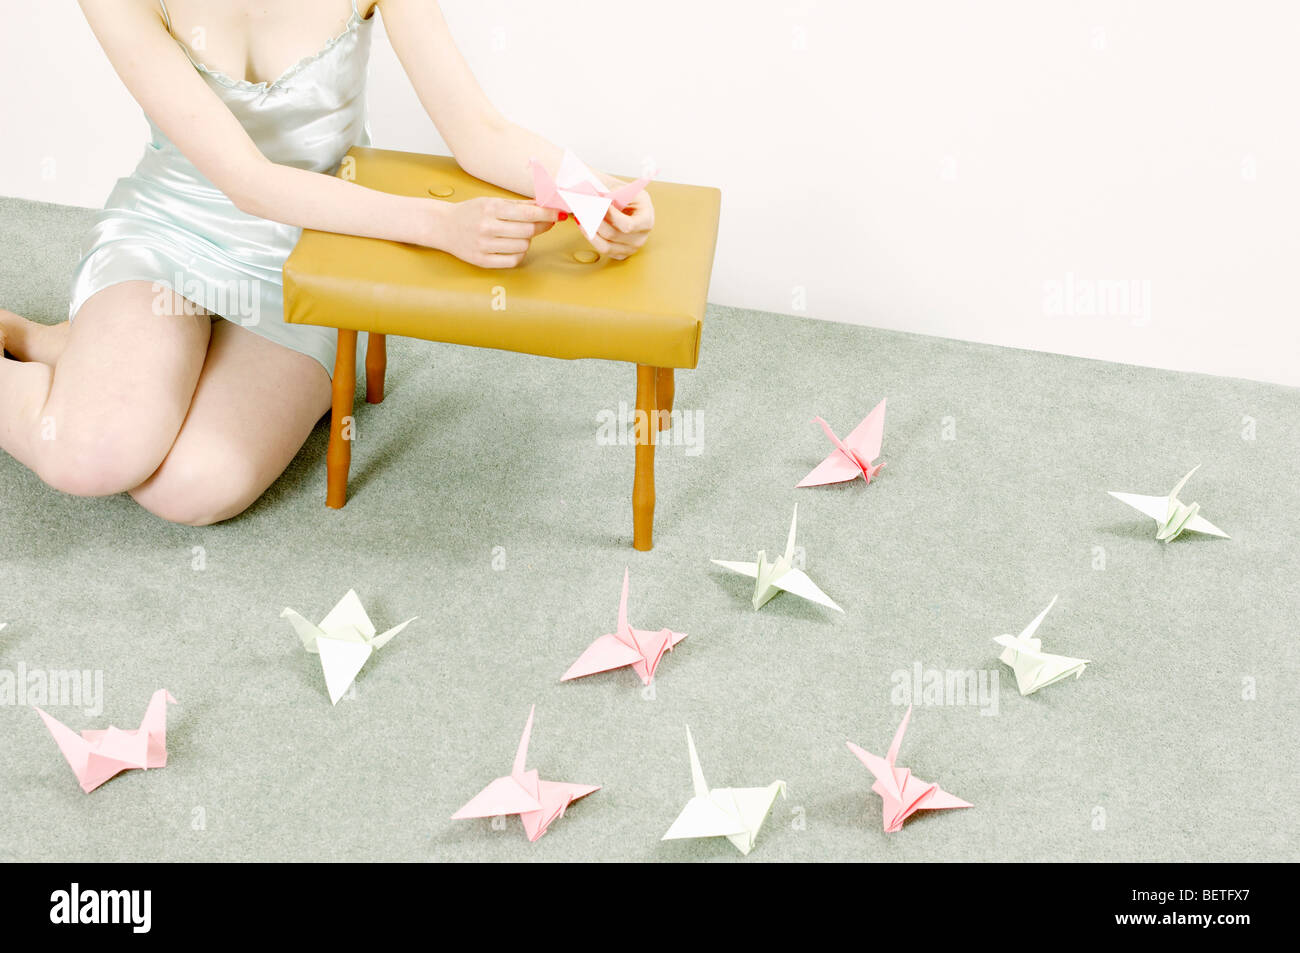 woman making origami swans - Stock Image